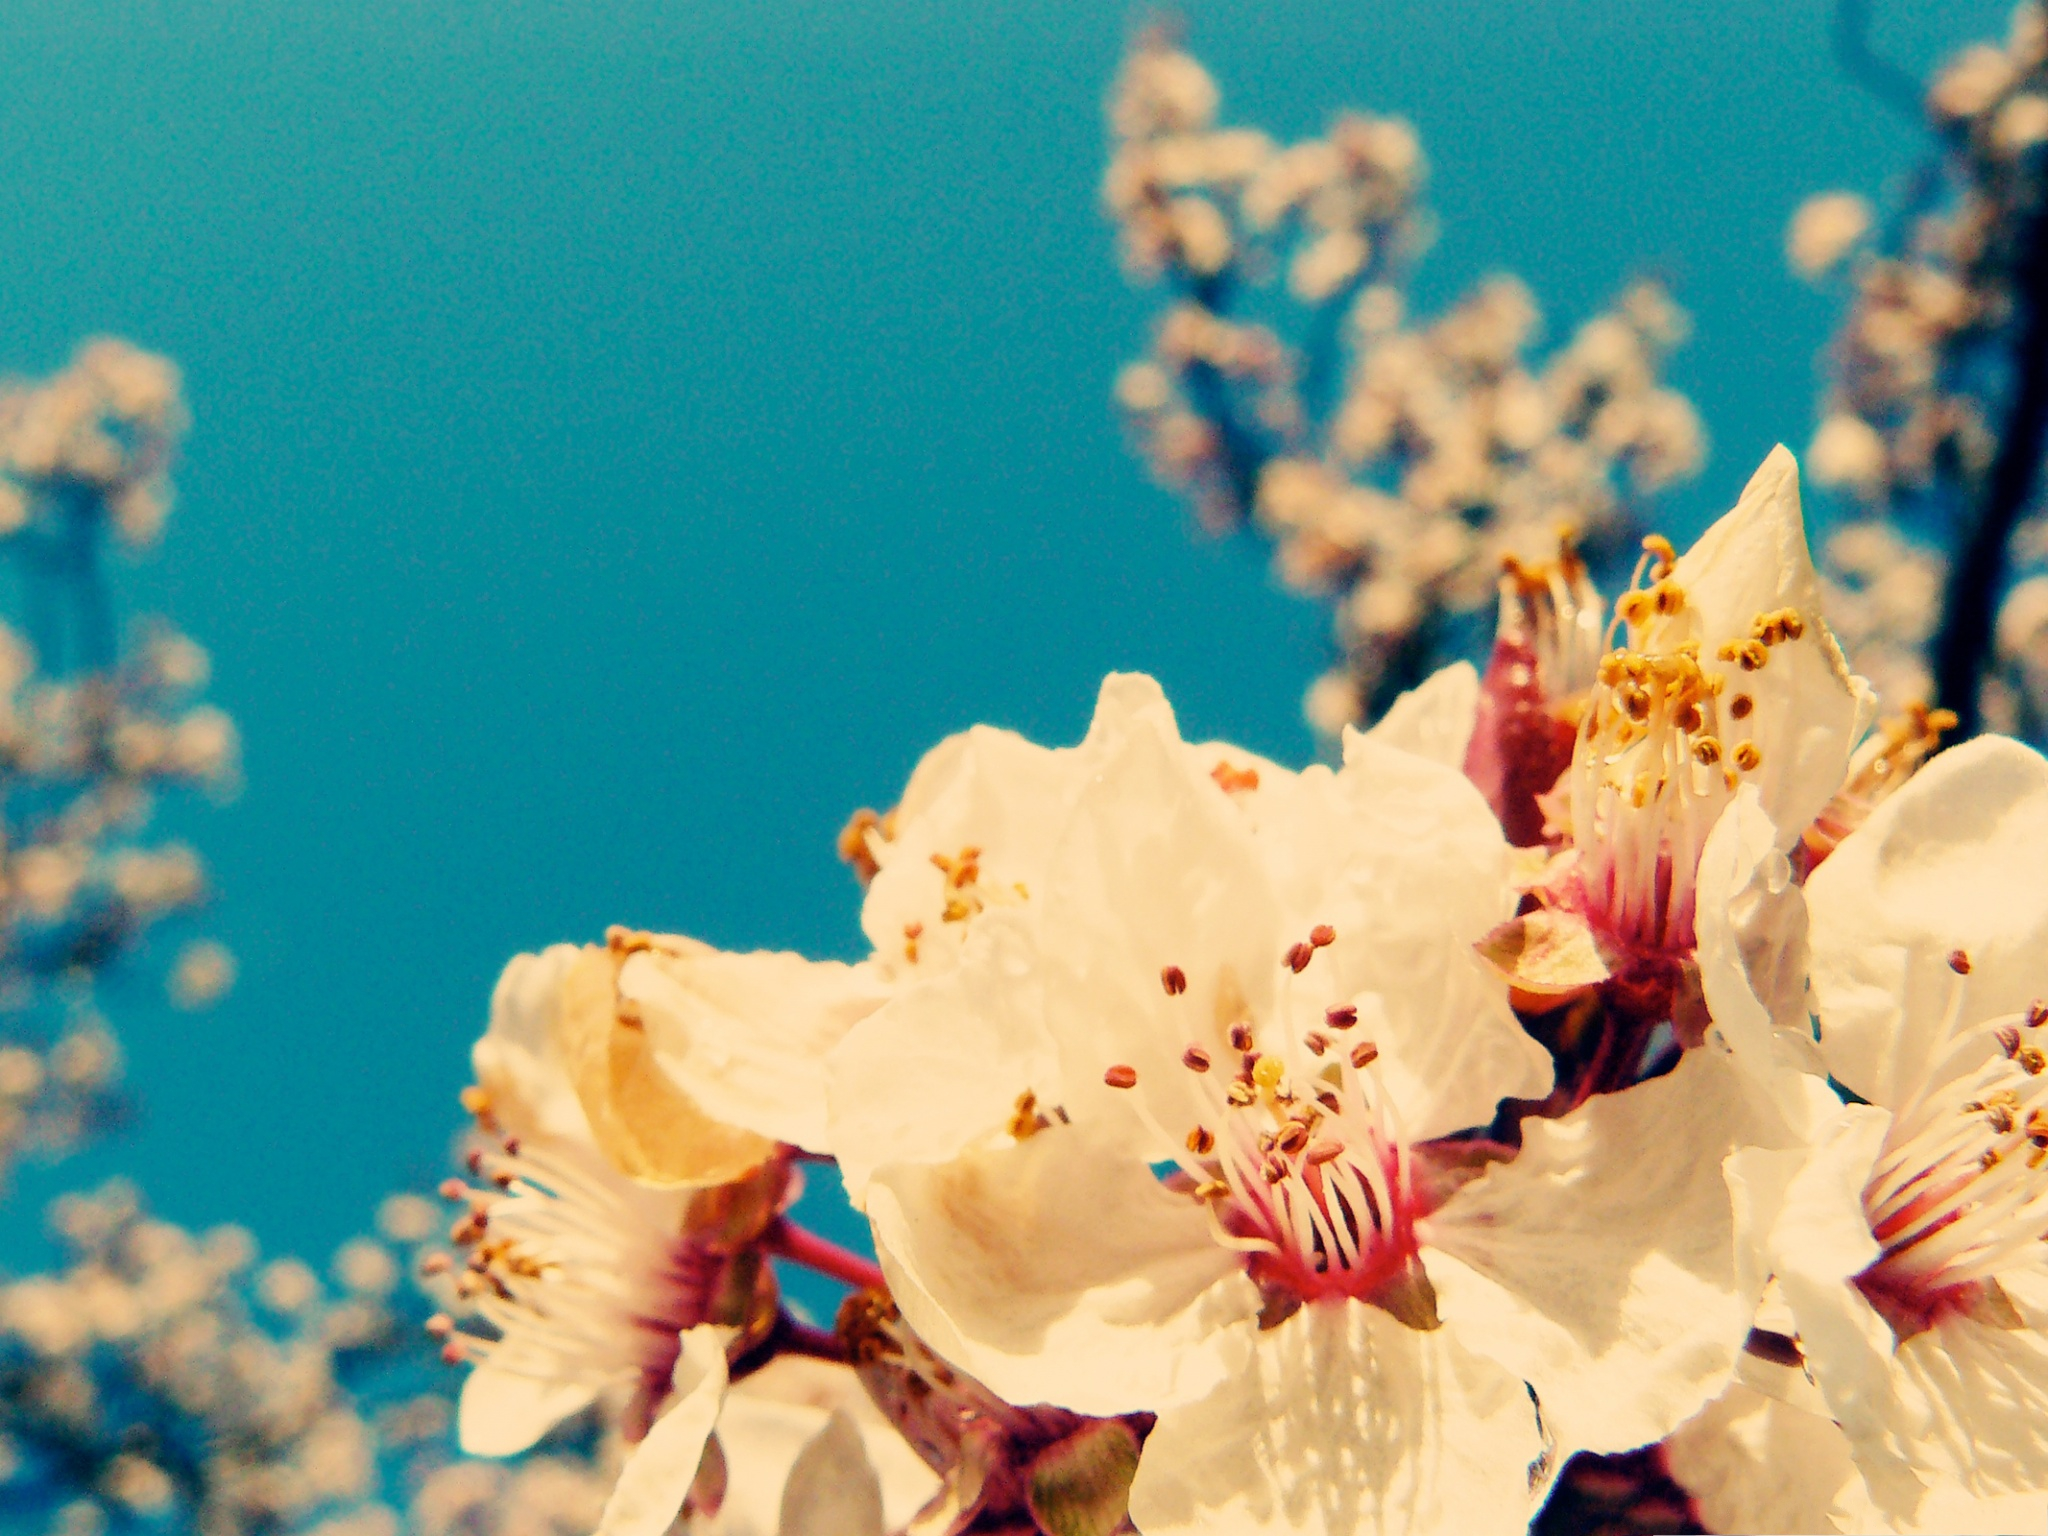 click to free download the wallpaper--White Cherry Flowers, Pure Flower in Bloom, Under the Blue Sky 2048X1536 free wallpaper download